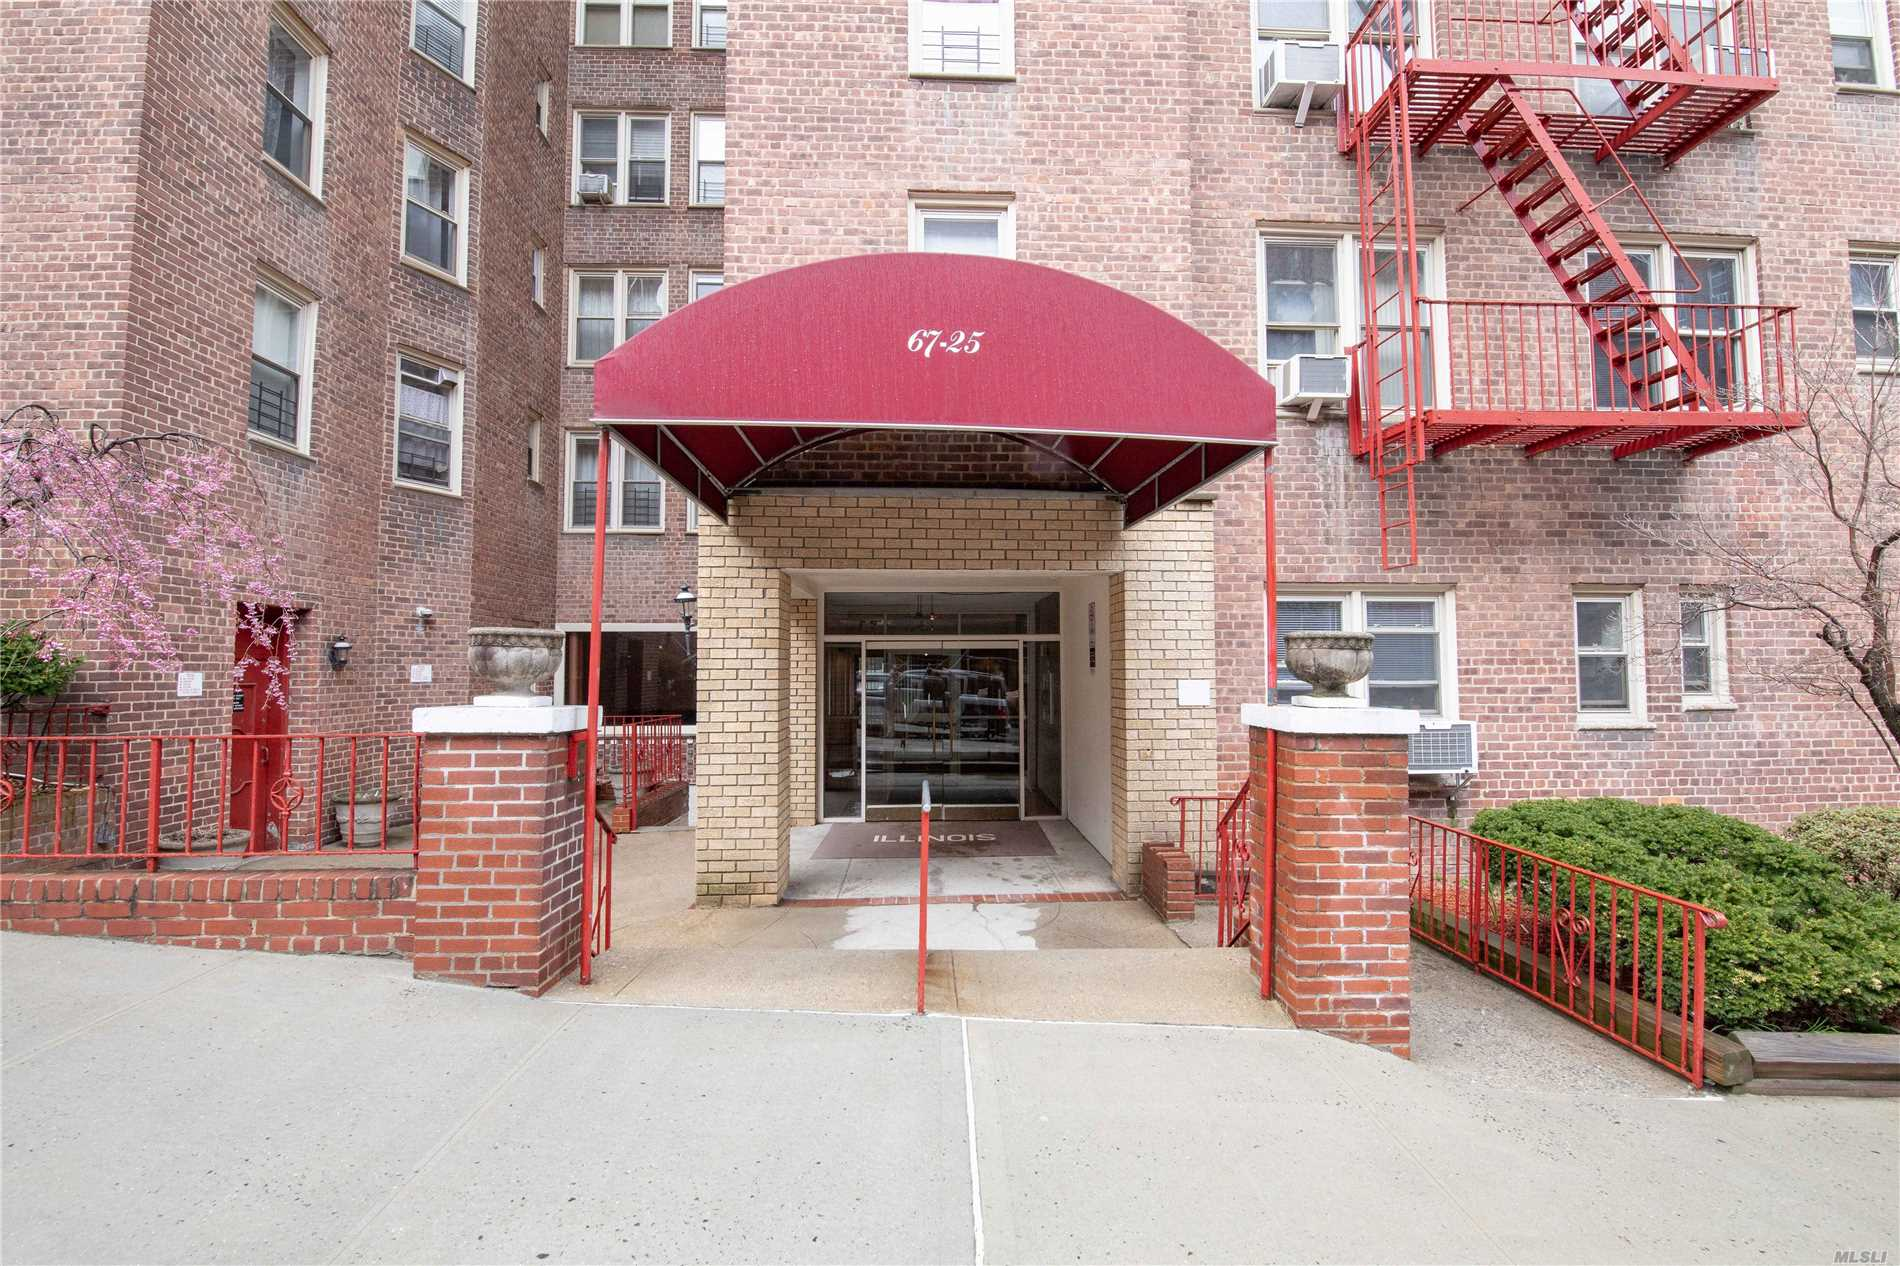 67-25 Clyde St, 1M - Forest Hills, New York